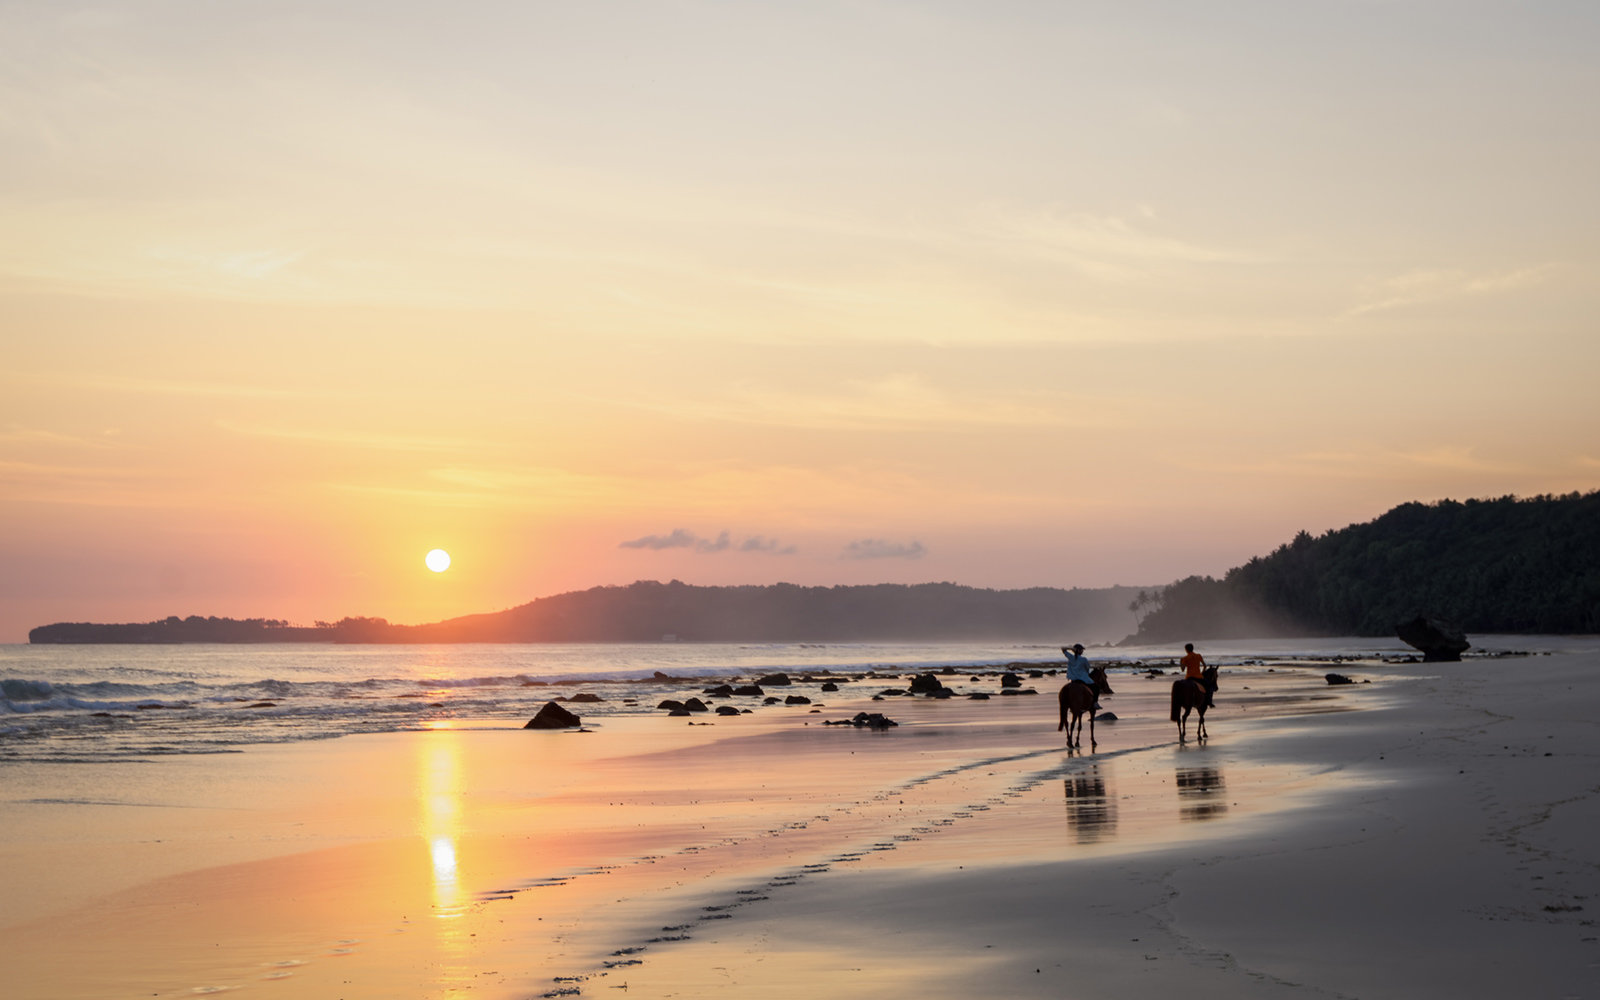 Horseback Riding, Sunset, Beach, Nihiwatu, Sumba, Indonesia